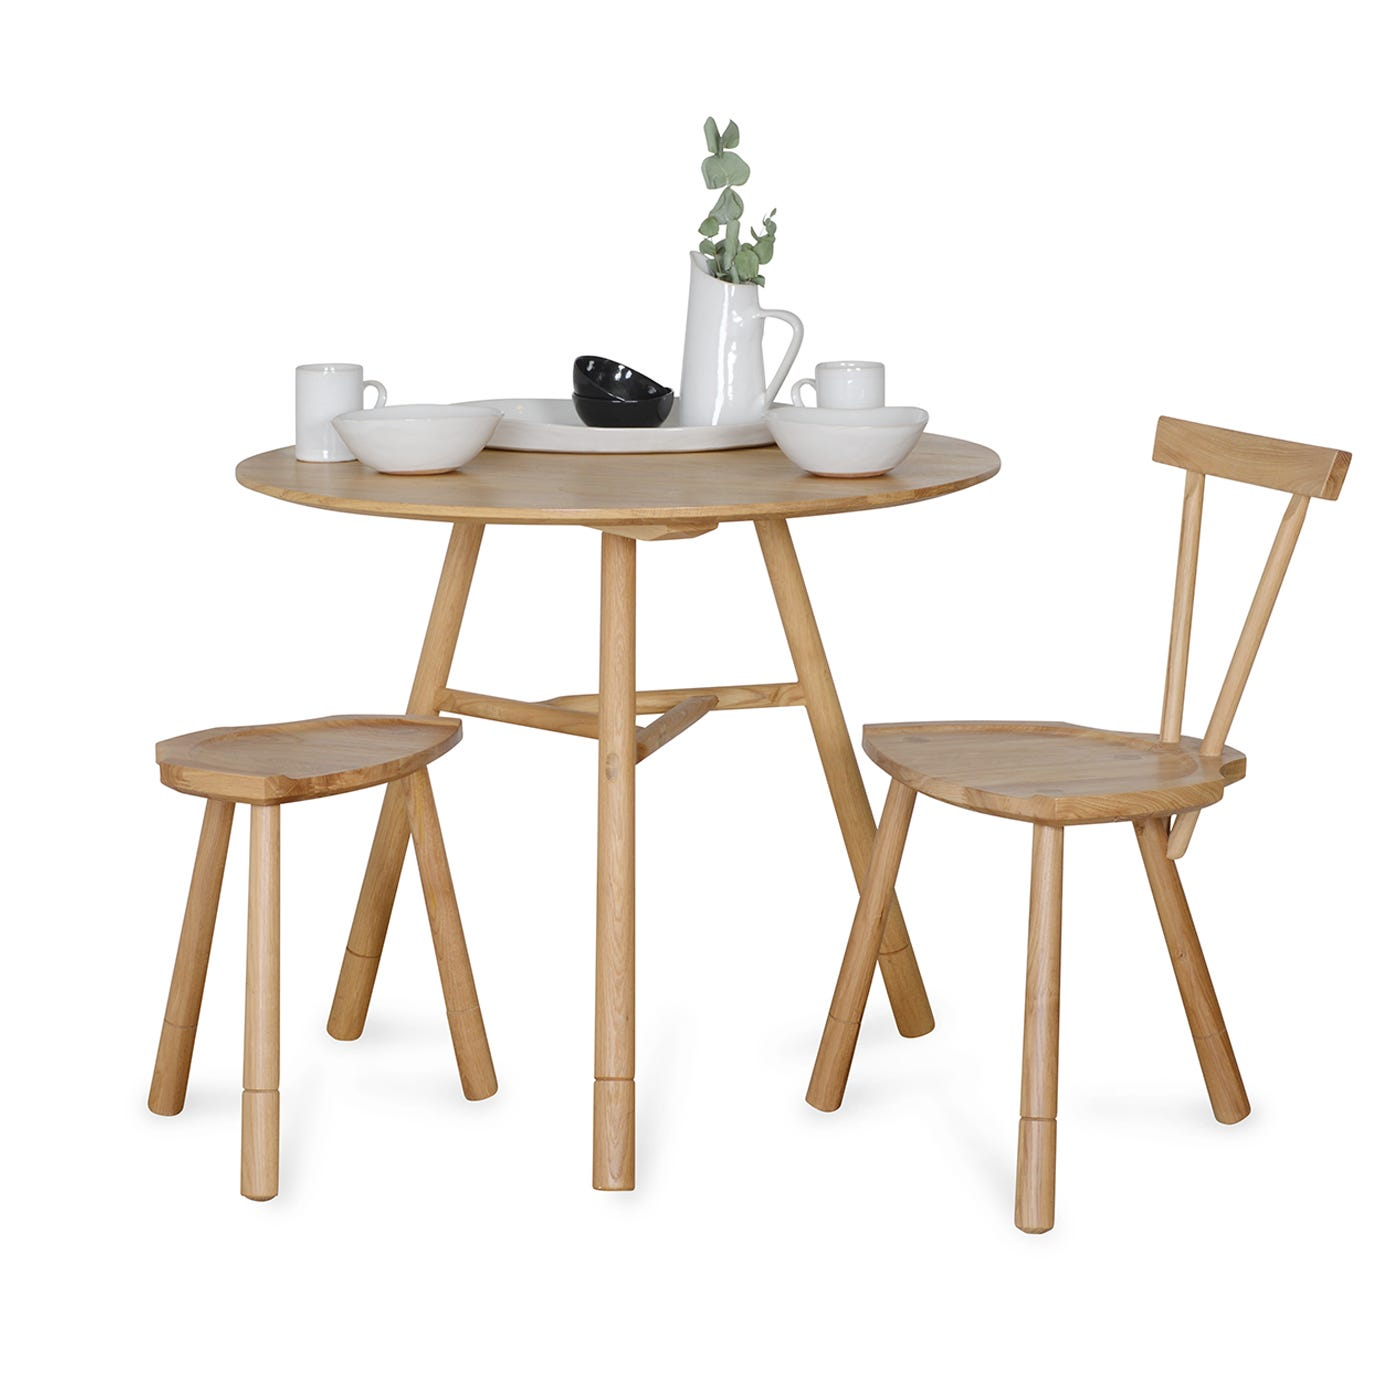 Heal S Whitstable 3 4 Seater Circular Dining Table